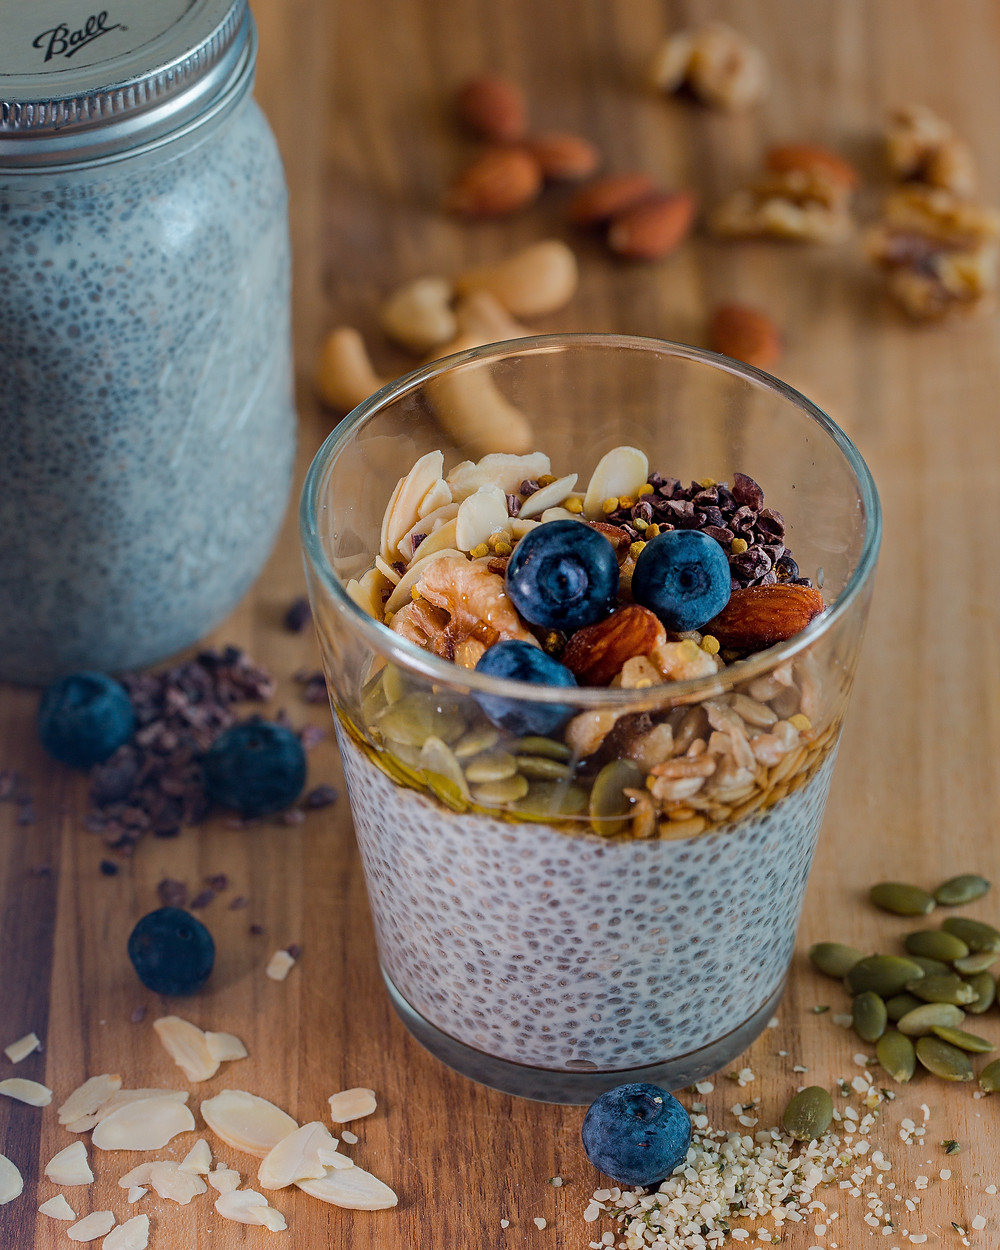 Chia Seed Pudding topped with nuts, seeds and berries.